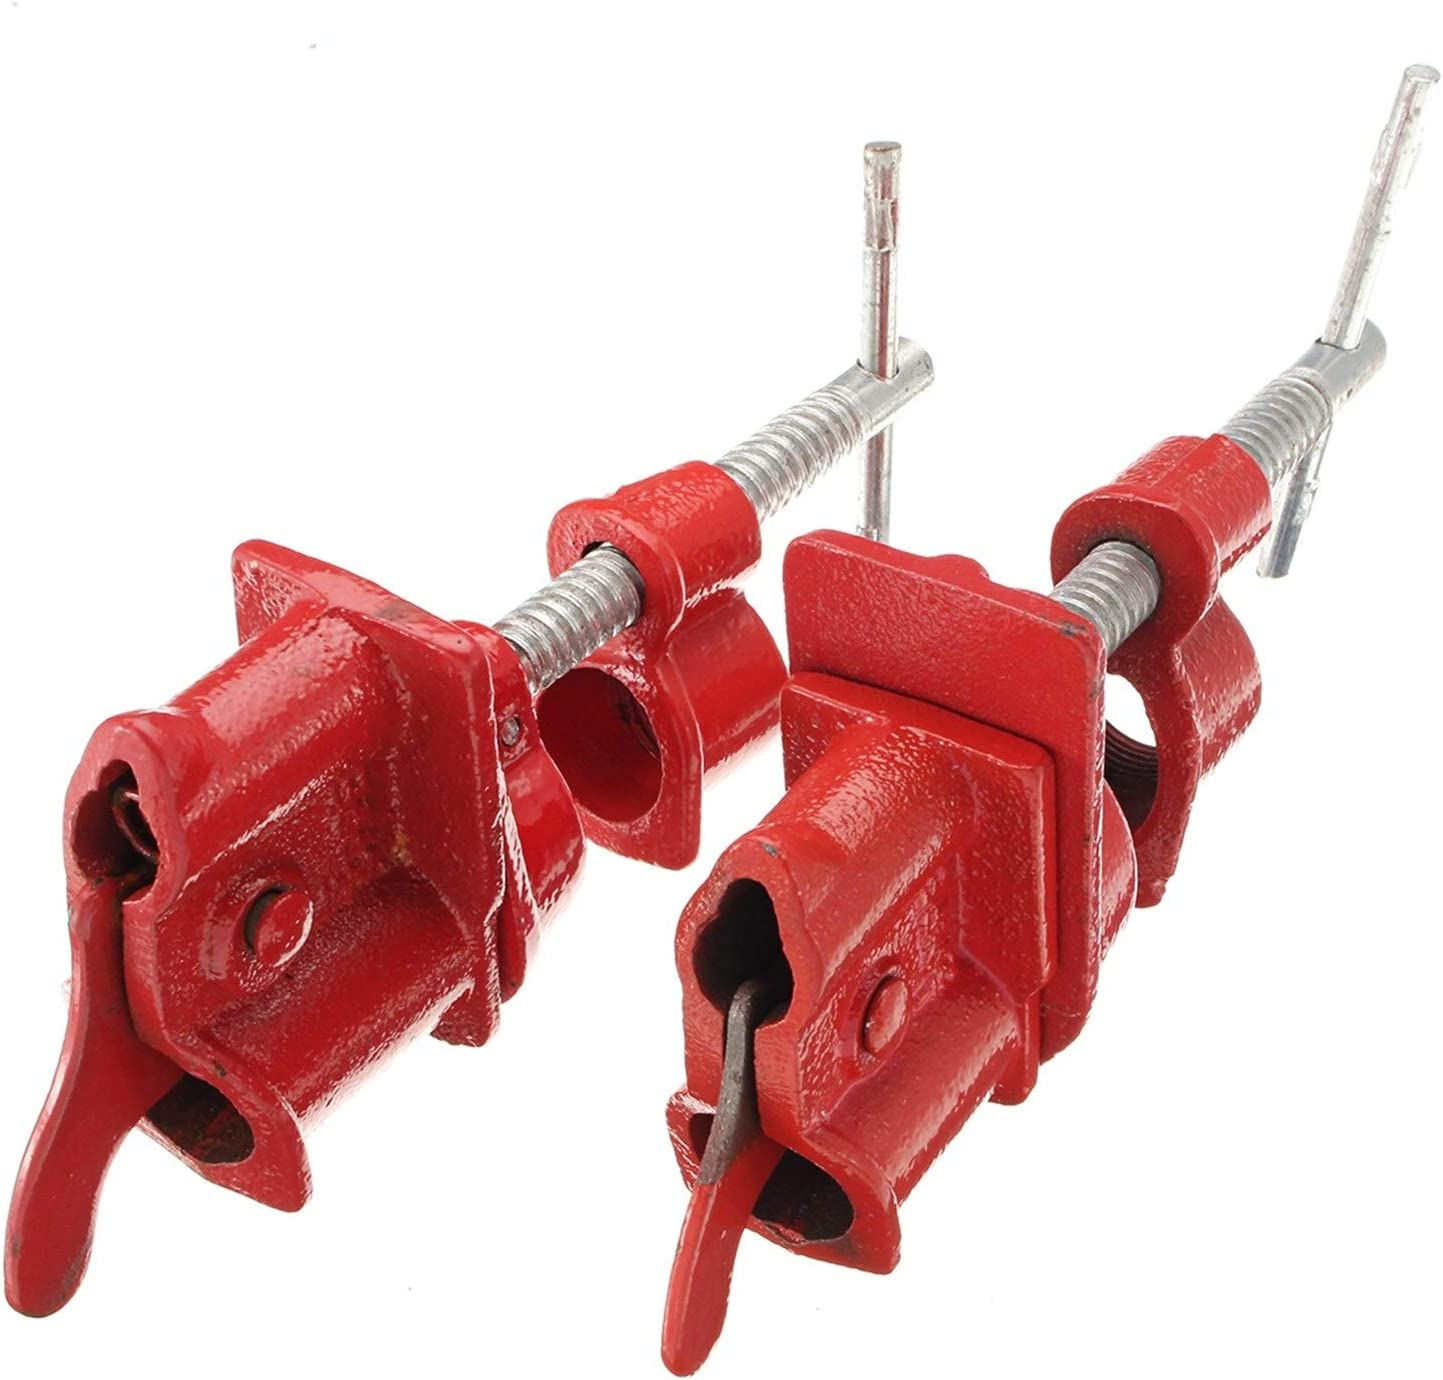 jhhzpd Durable Clamps Gluing Cast Quick Indefinitely Iron Heavy-Duty Release Japan Maker New